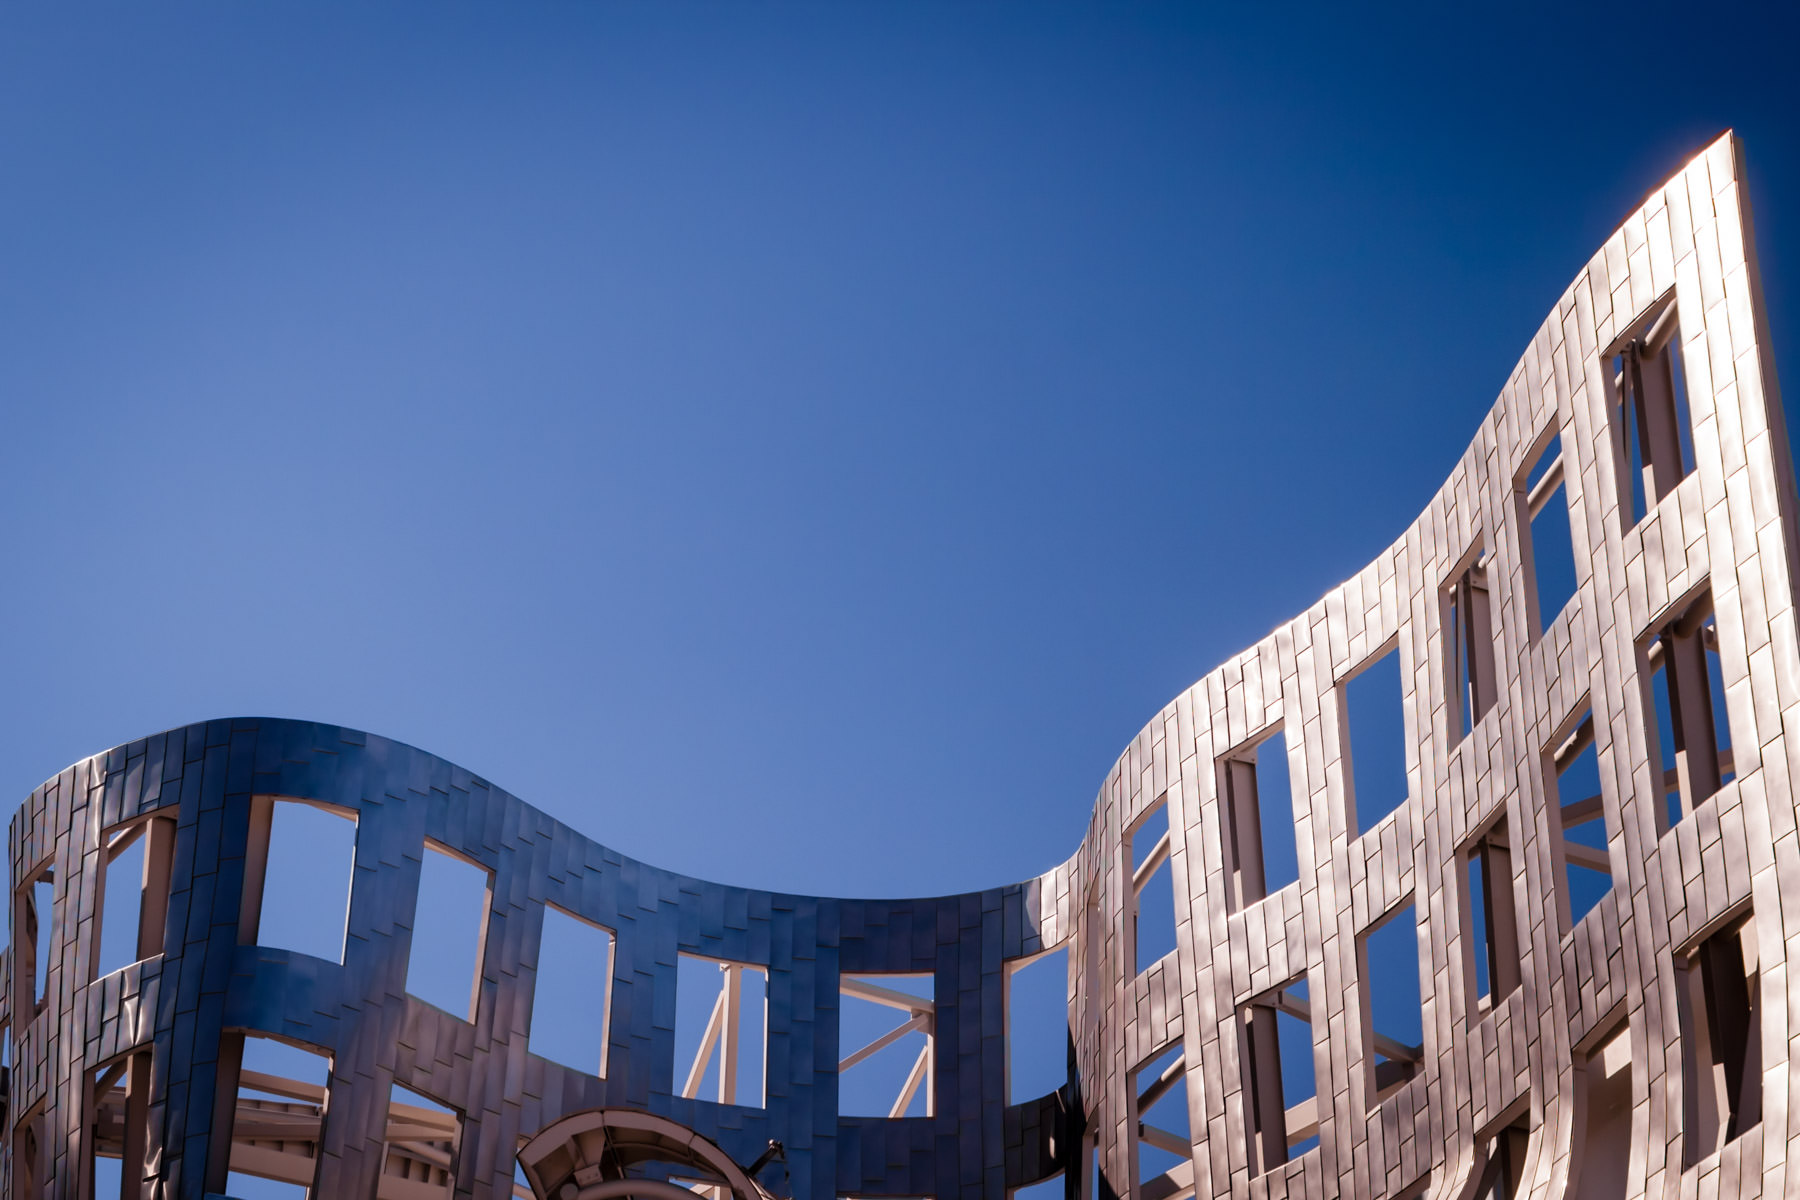 Exterior detail of the Cleveland Clinic's Frank Gehry-designed Ruvo Center for Brain Health, Las Vegas.